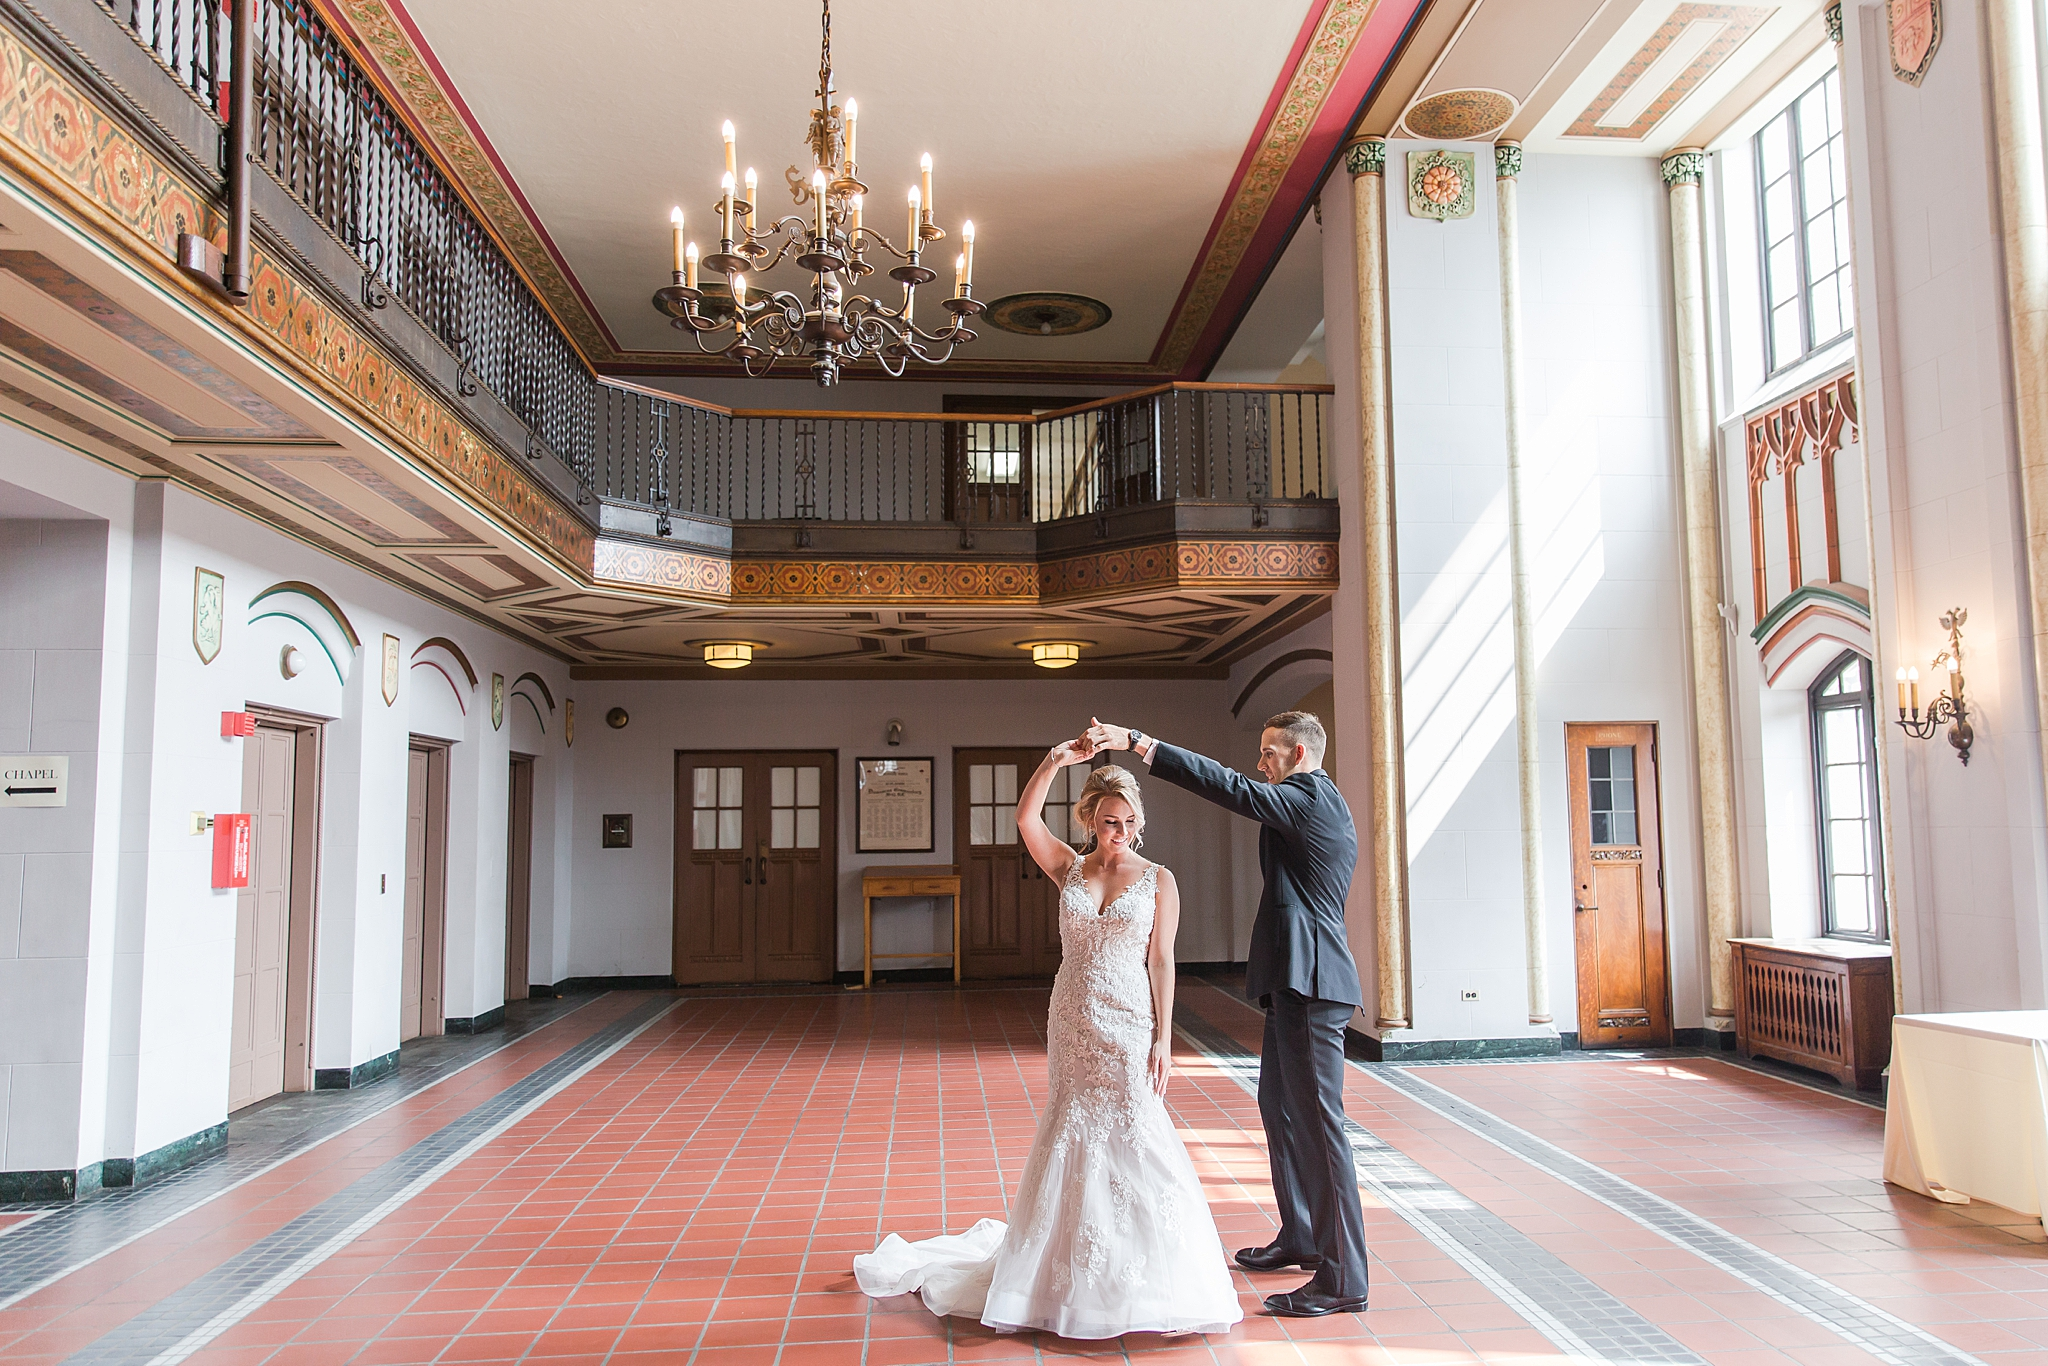 masonic-temple-iconic-wedding-photography-in-detroit-michigan-by-courtney-carolyn-photography_0020.jpg